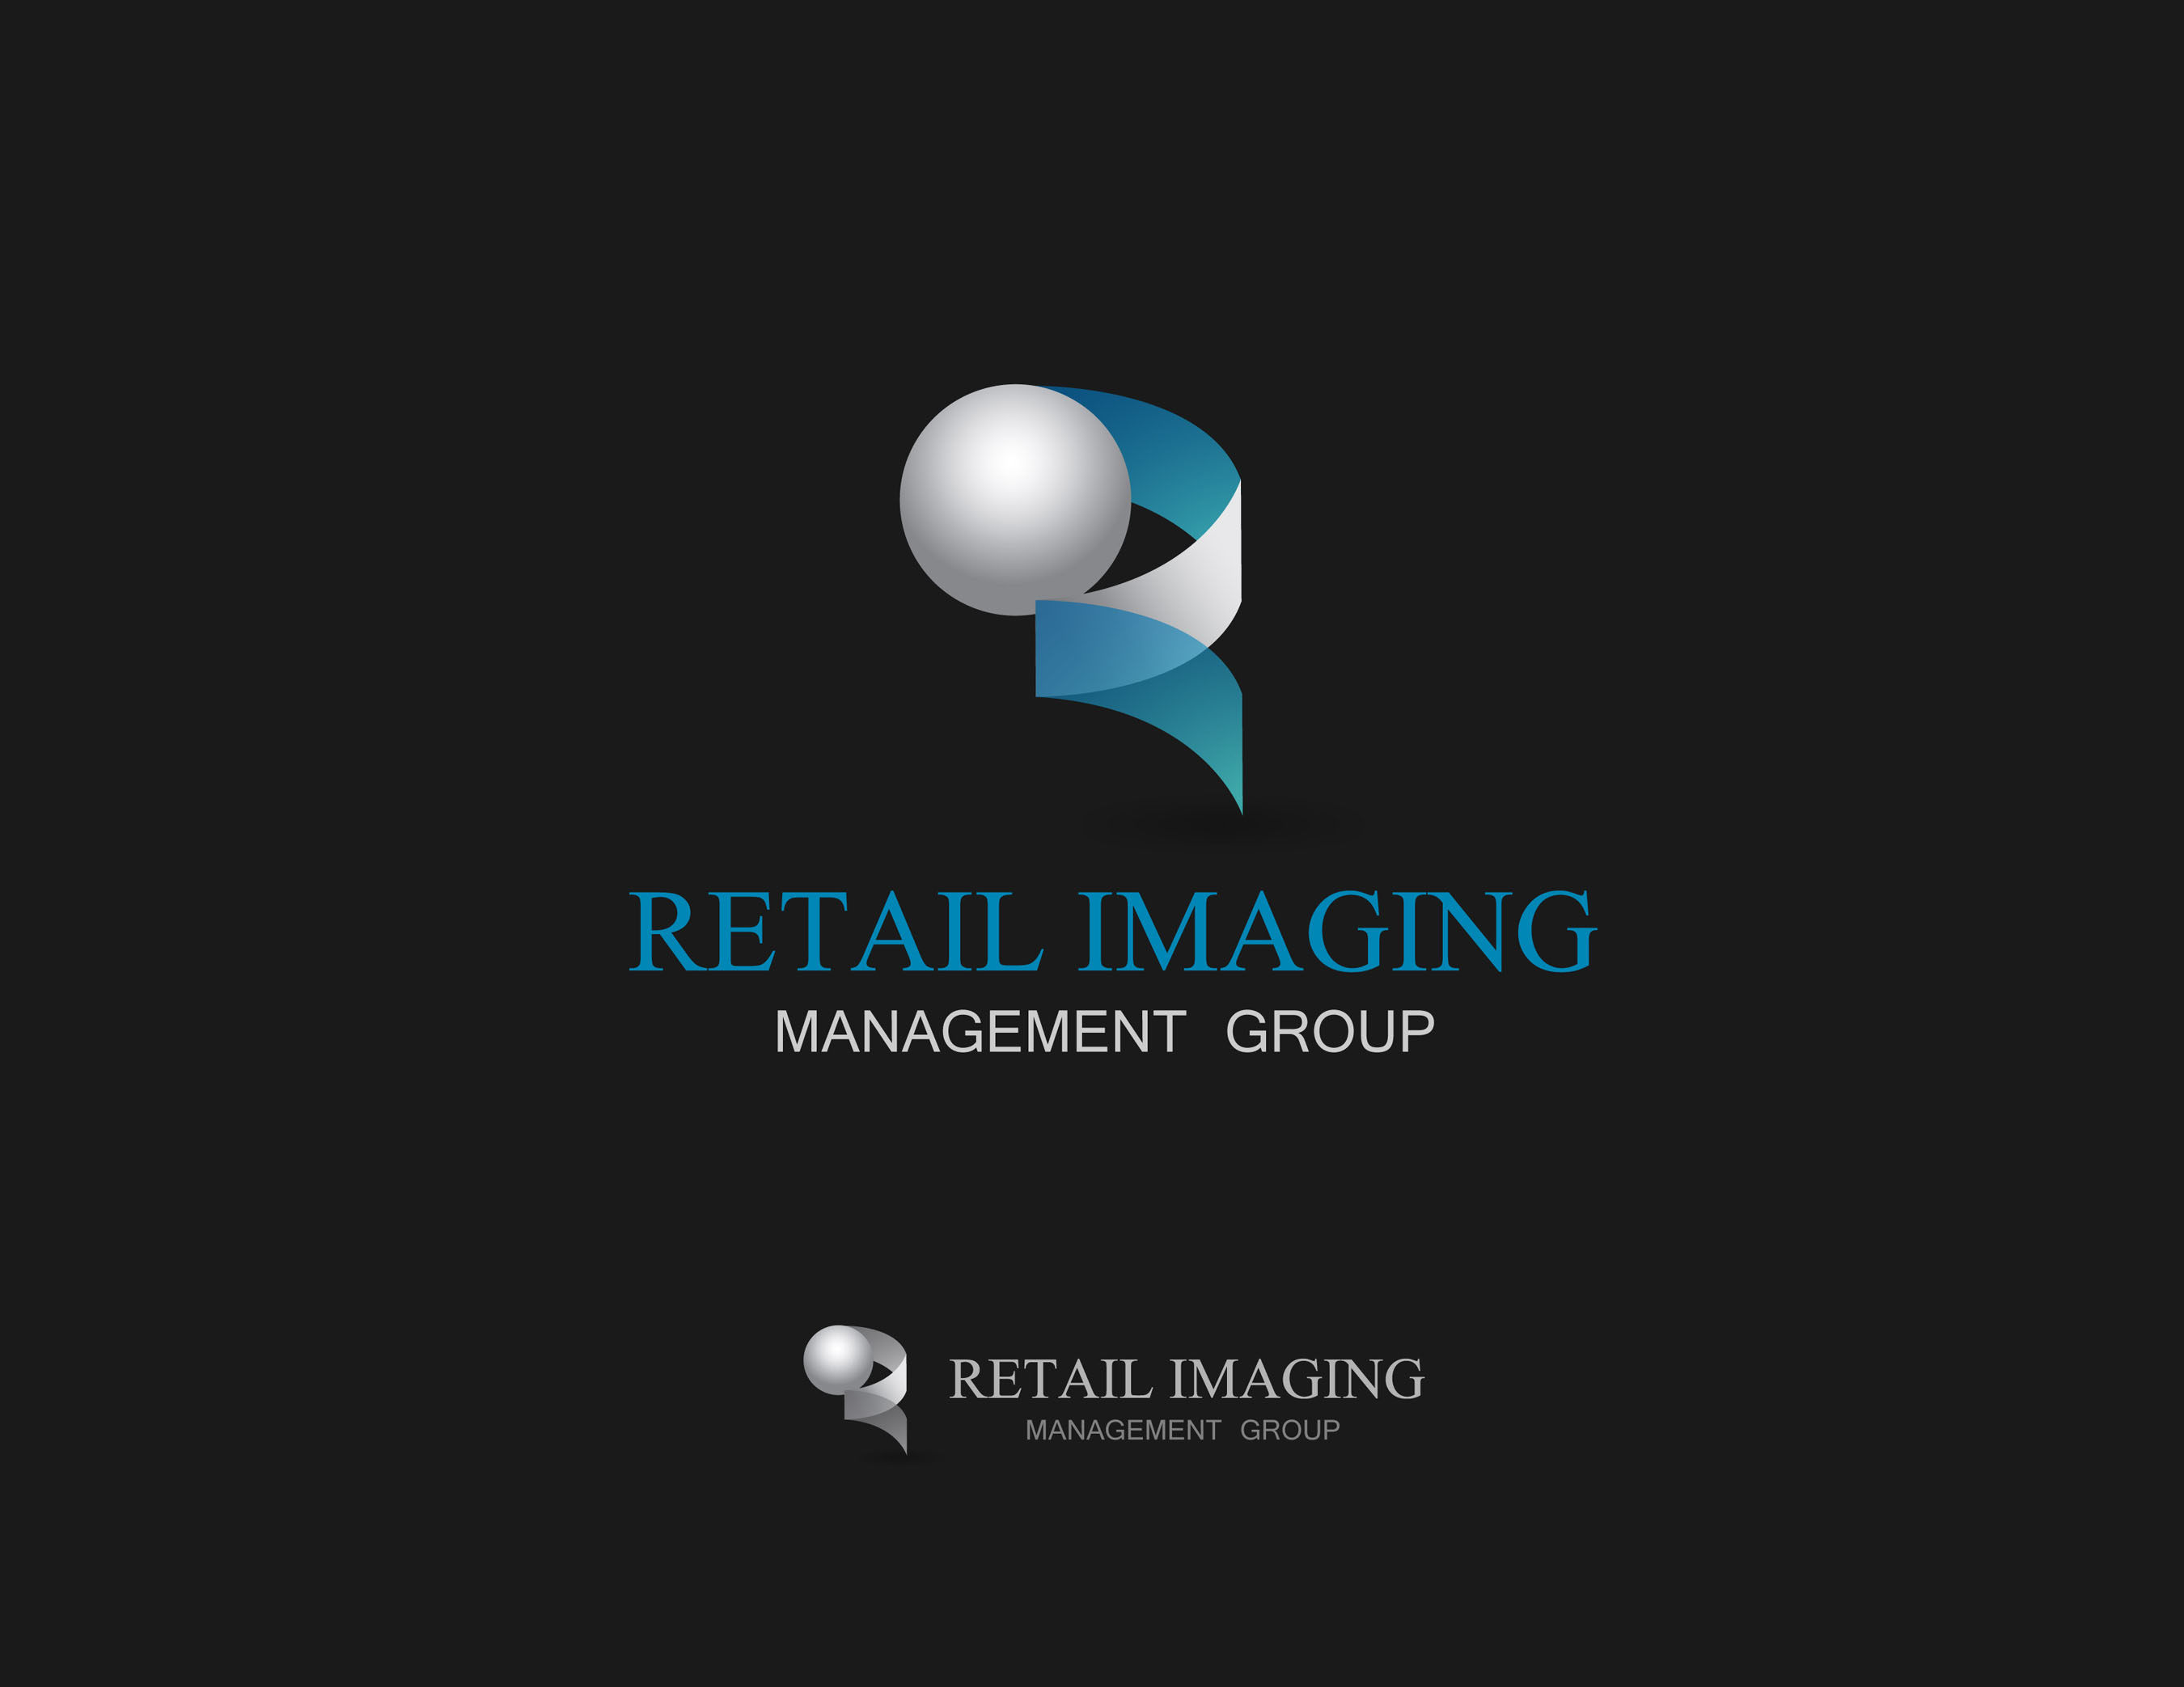 Logo Design by Mark Anthony Moreto Jordan - Entry No. 102 in the Logo Design Contest Creative Logo Design for Retail Imaging Management Group (R.I.M.G.).